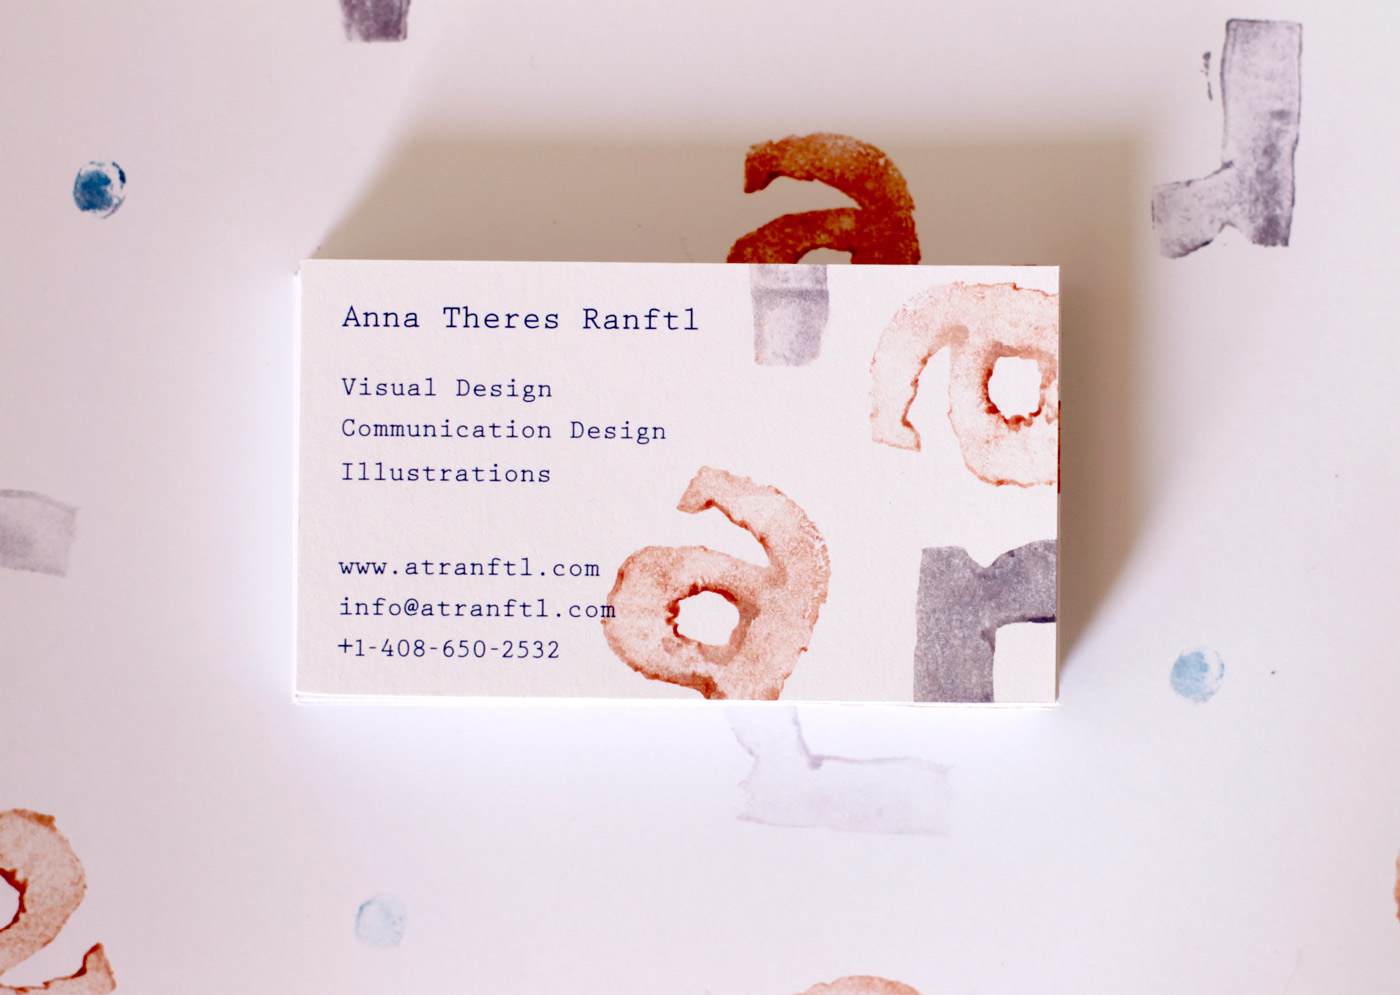 Self made business cards – Anna Theres Ranftl